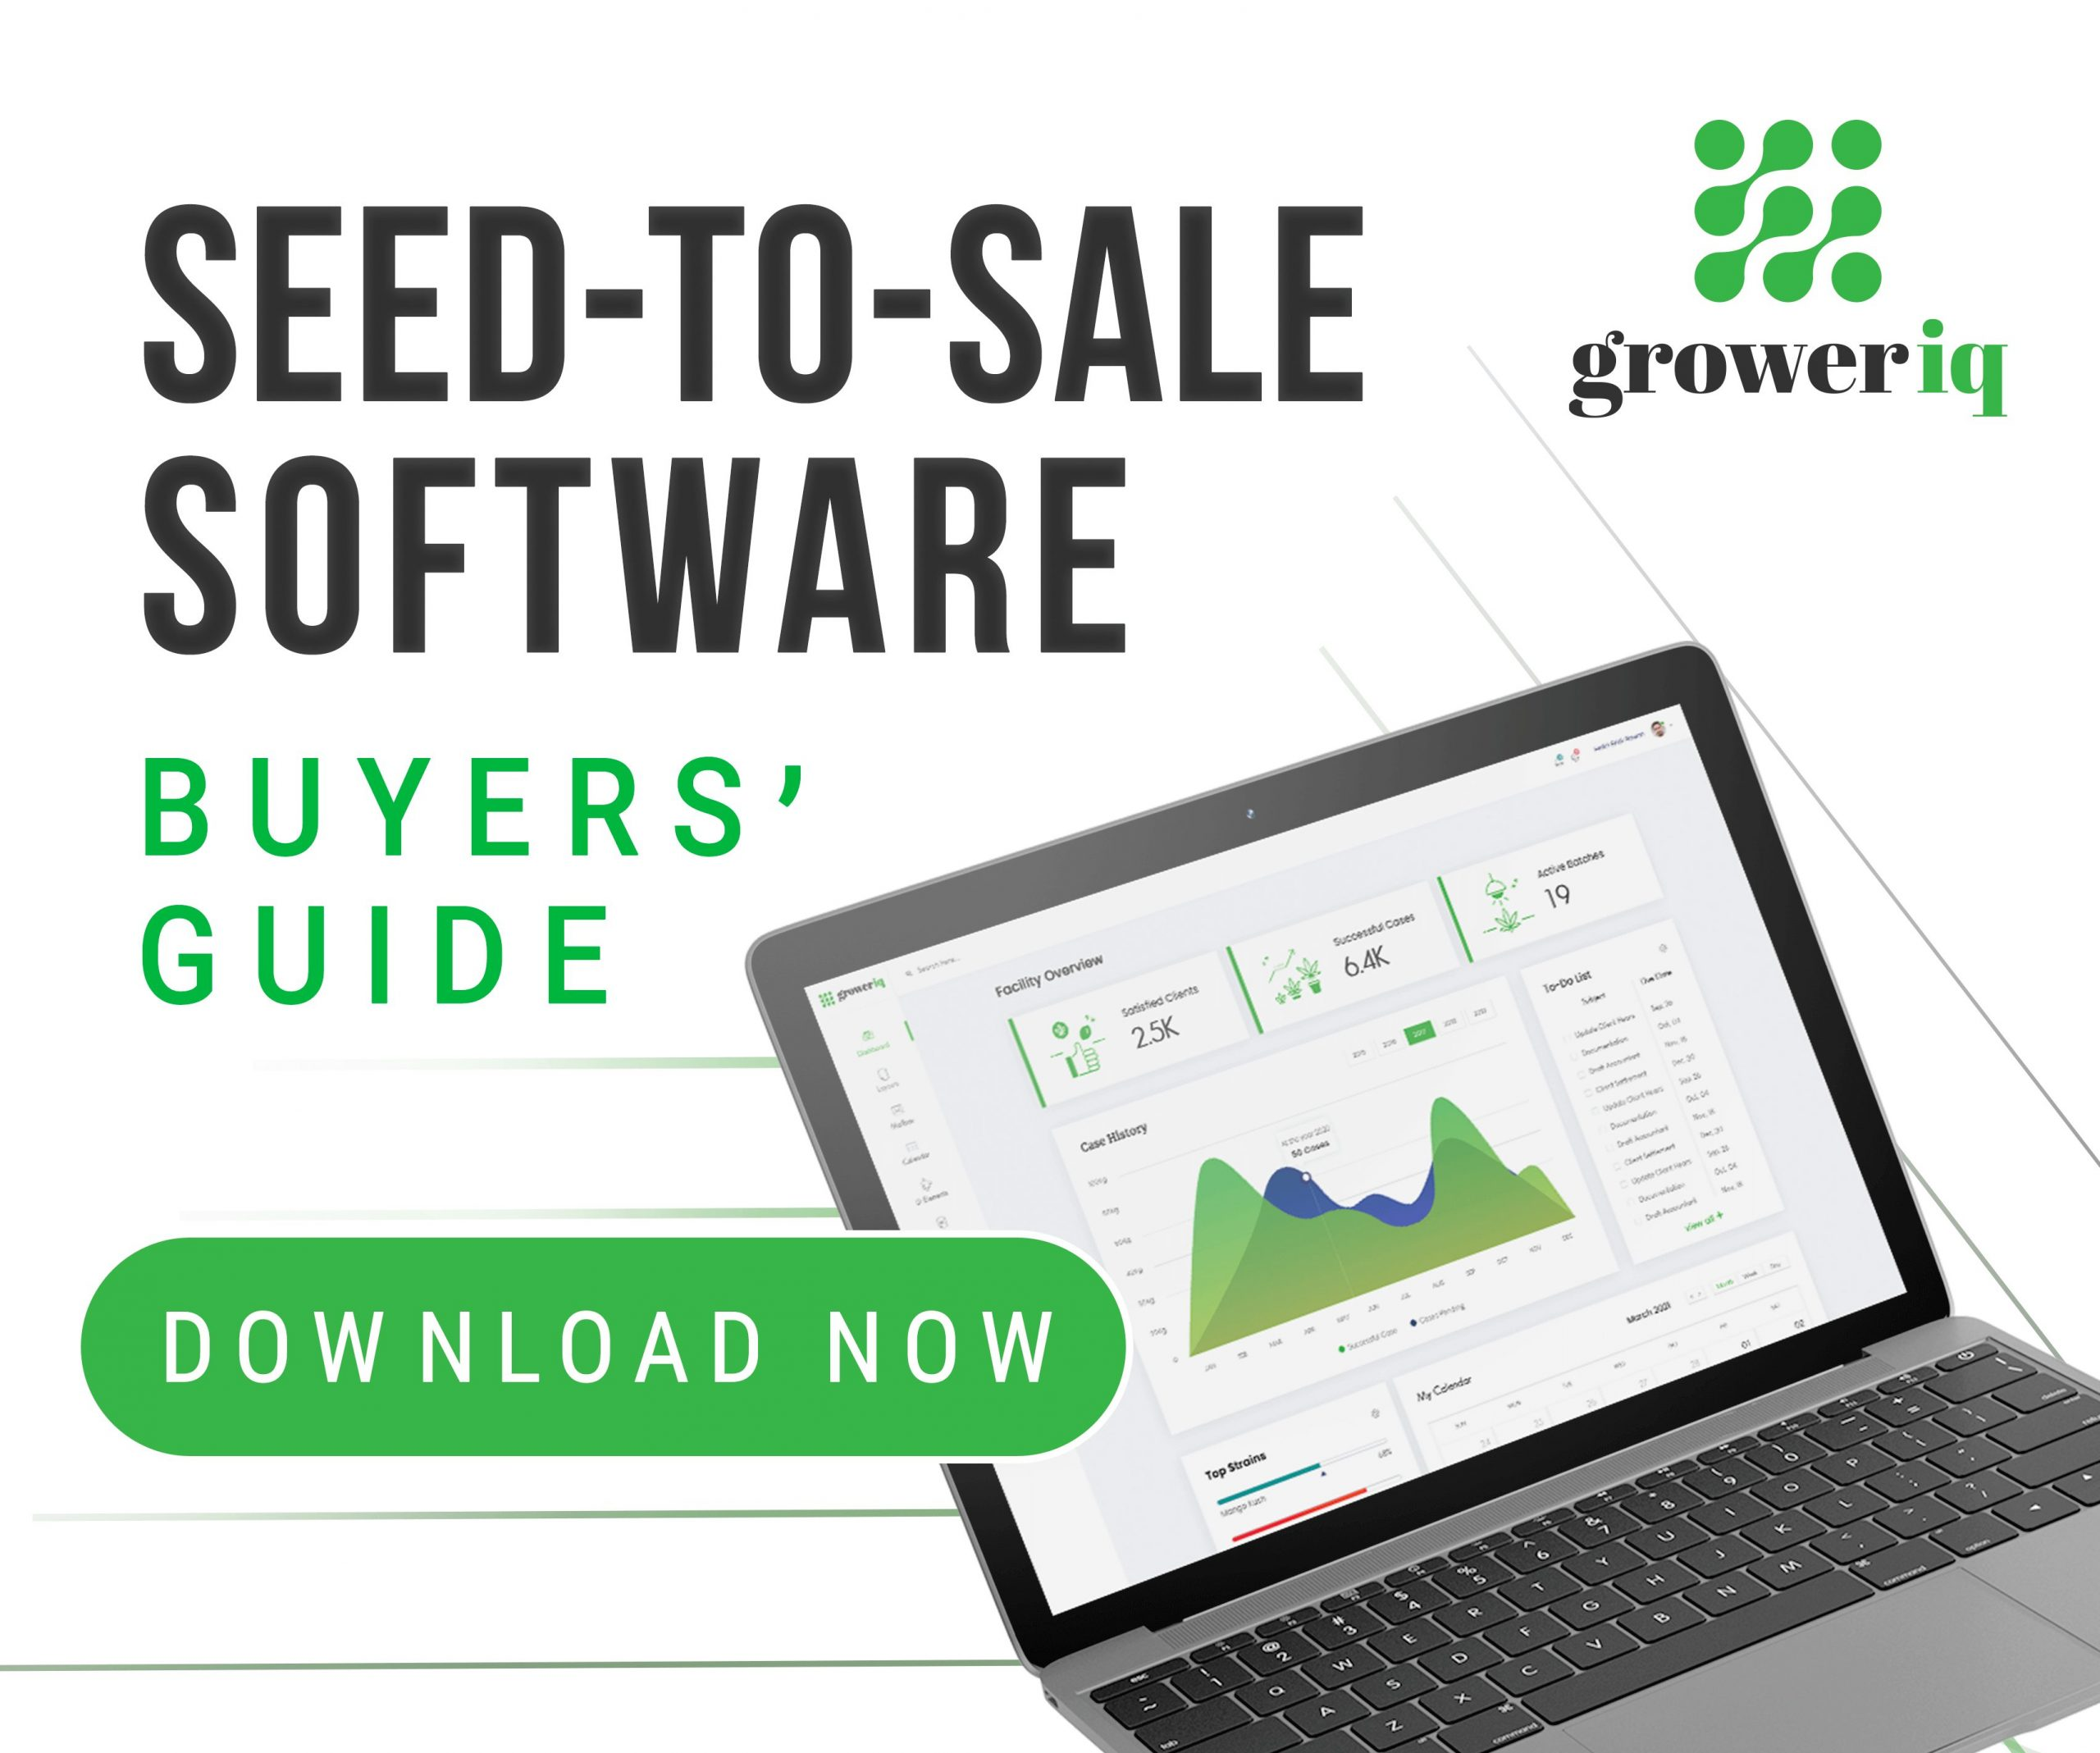 GrowerIQ's FREE Seed-to-Sale Software Buyers' Guide